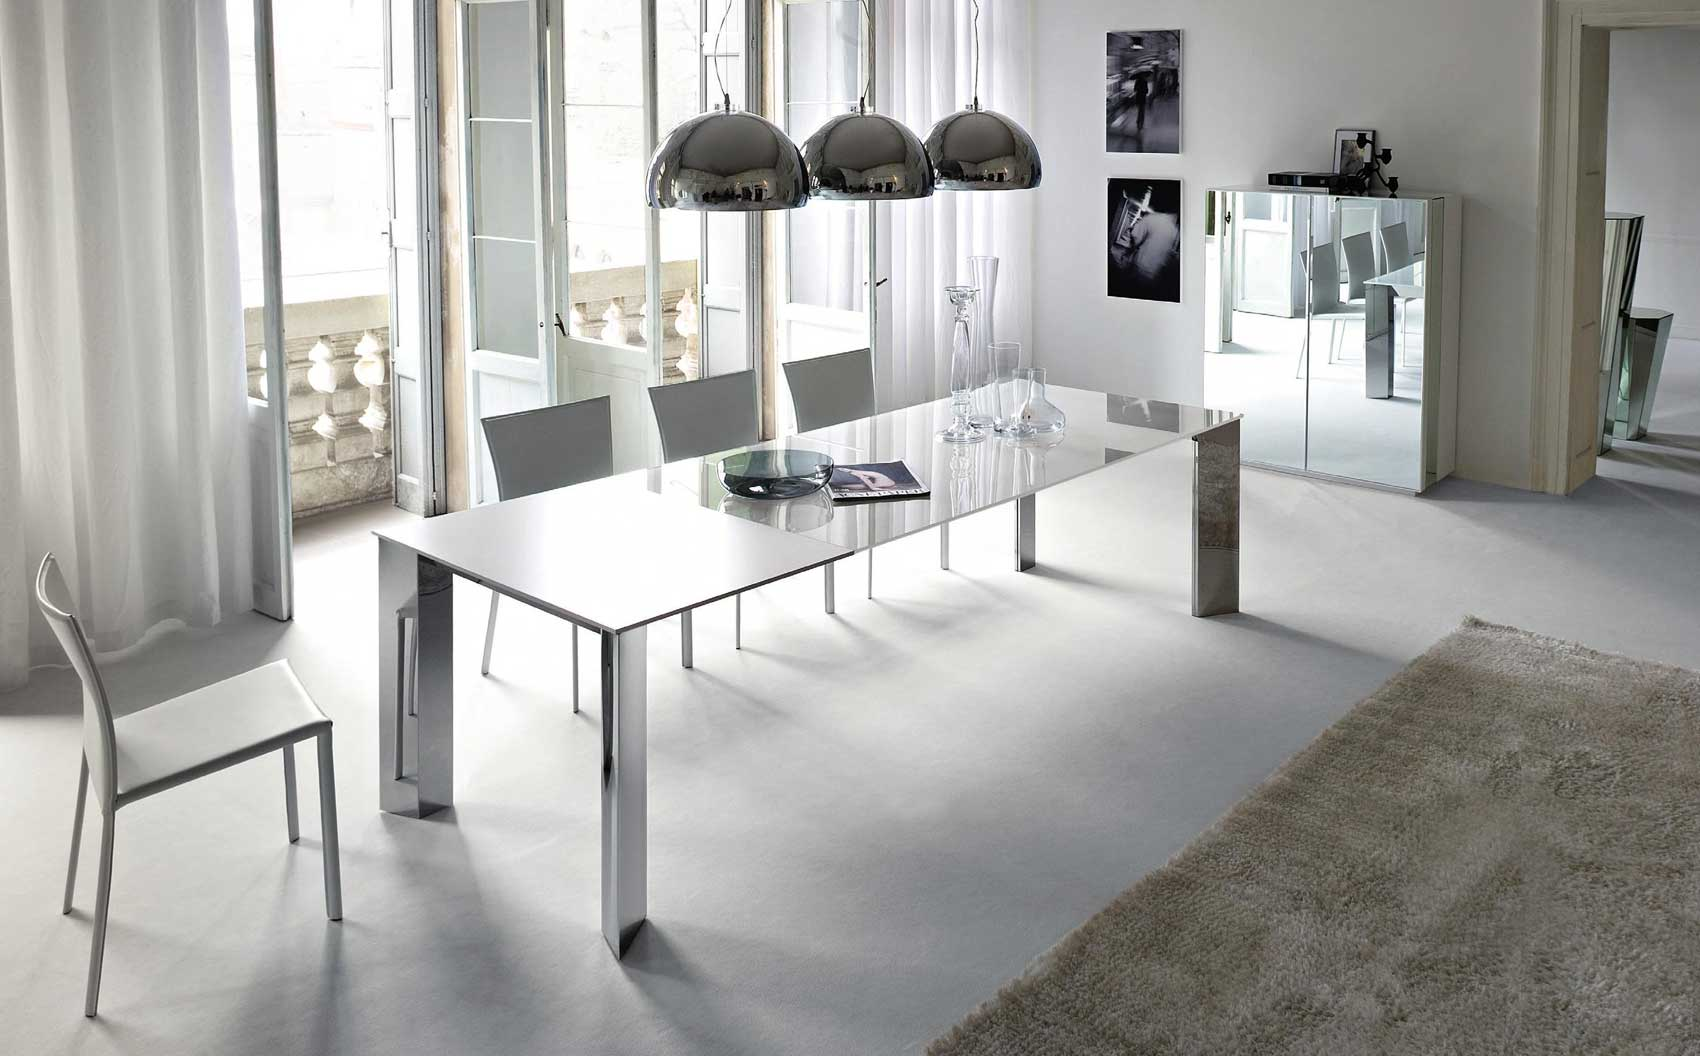 8 Seater Glass Dining Table